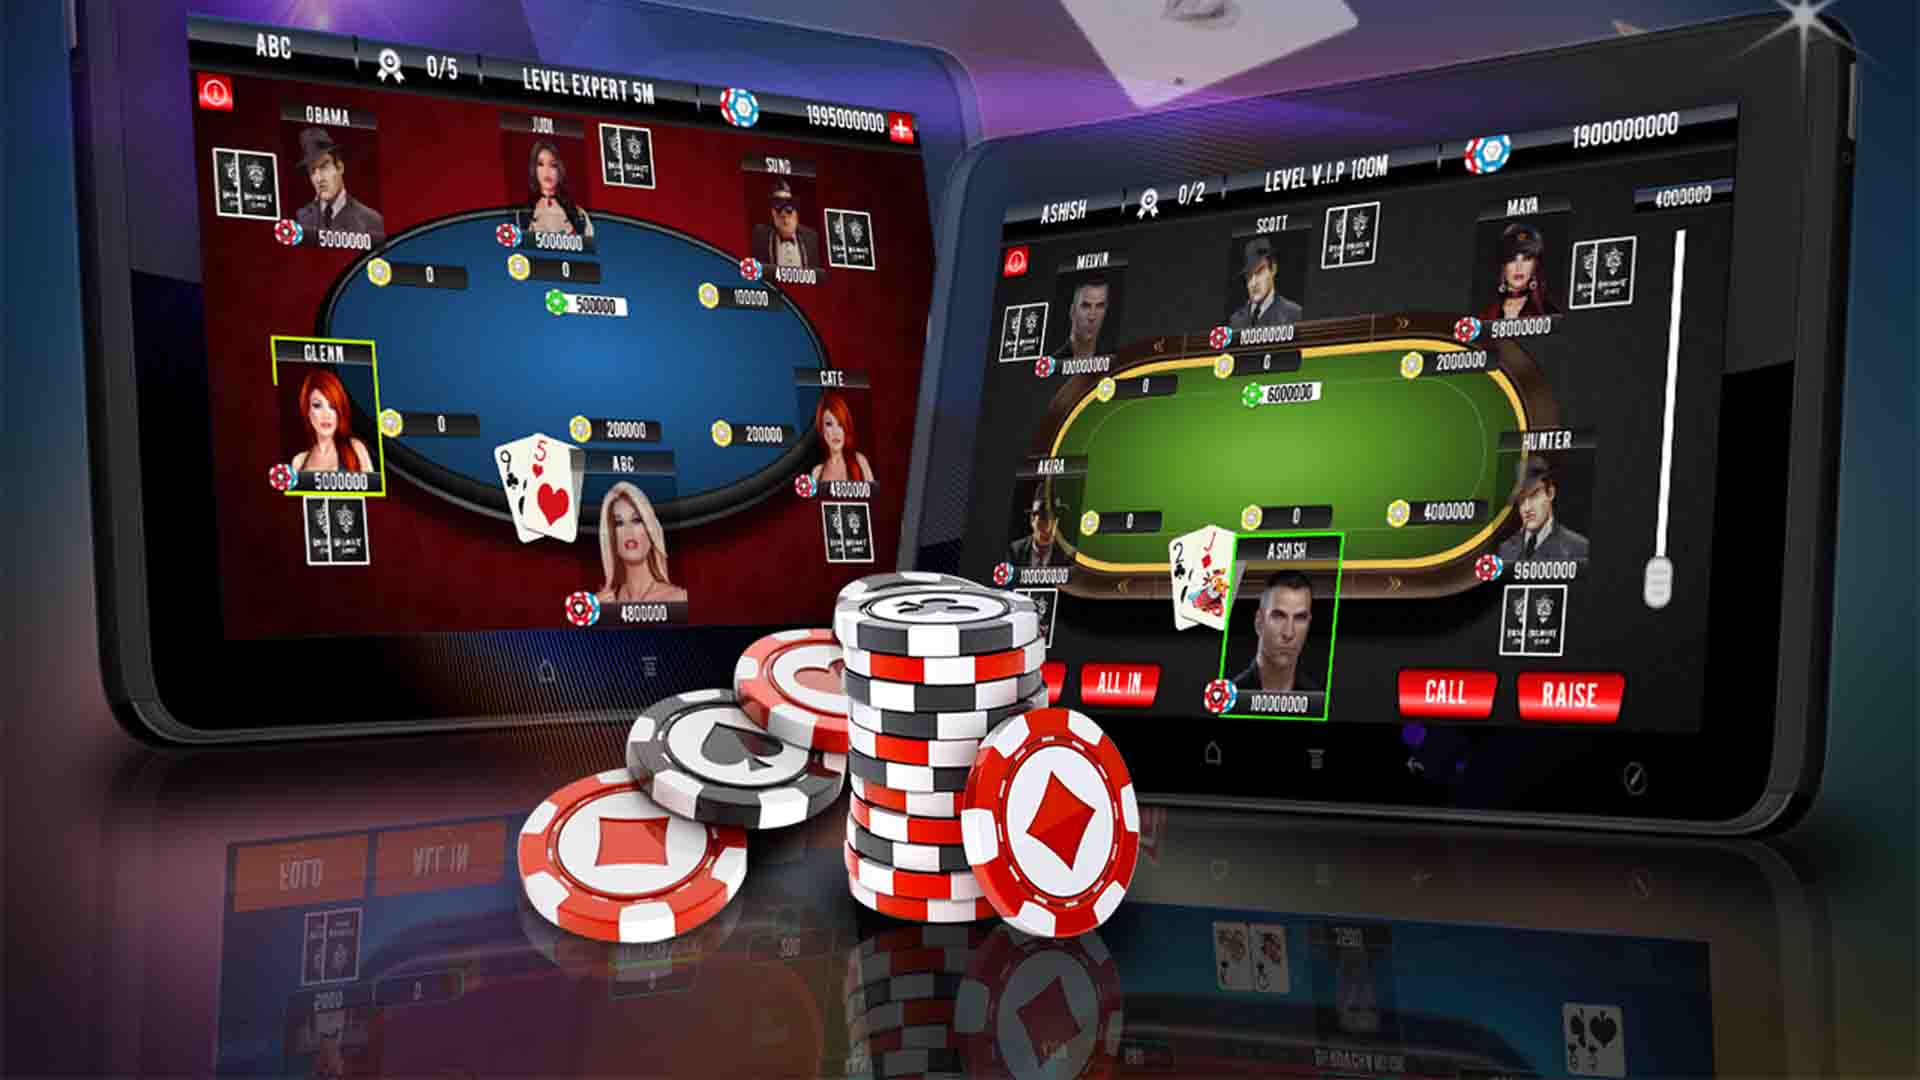 Picture Your Online Casino On Top Read This And Make It So